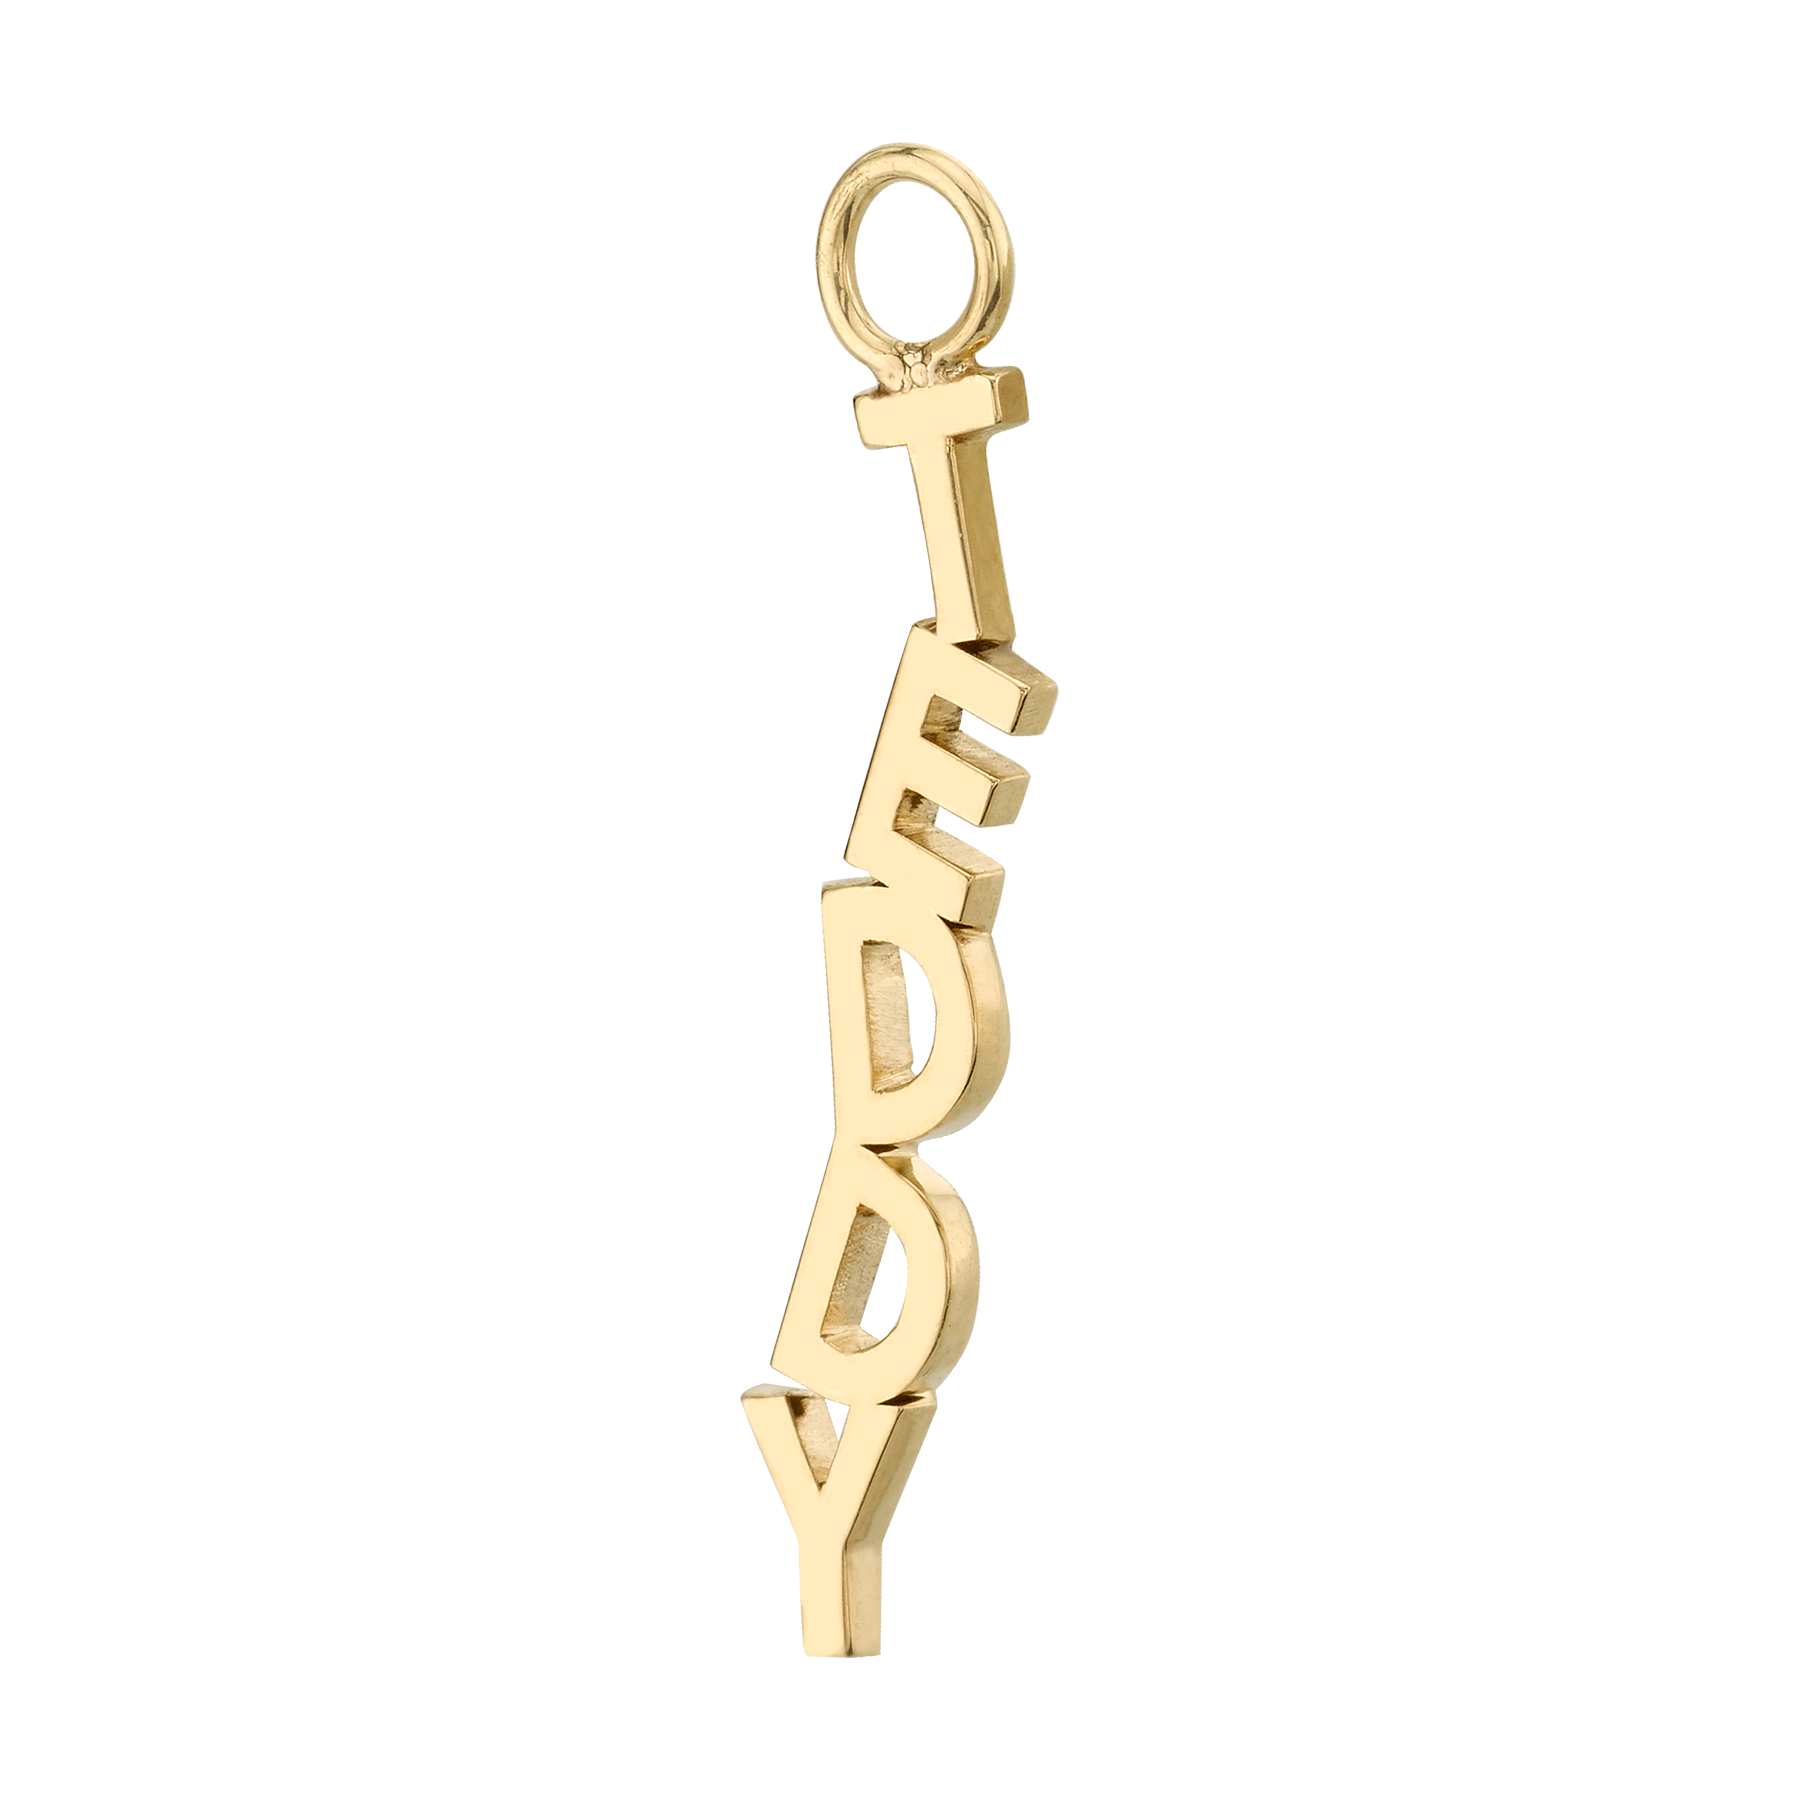 GOLD LETTER AND SYMBOL HOOP EARRING CHARM